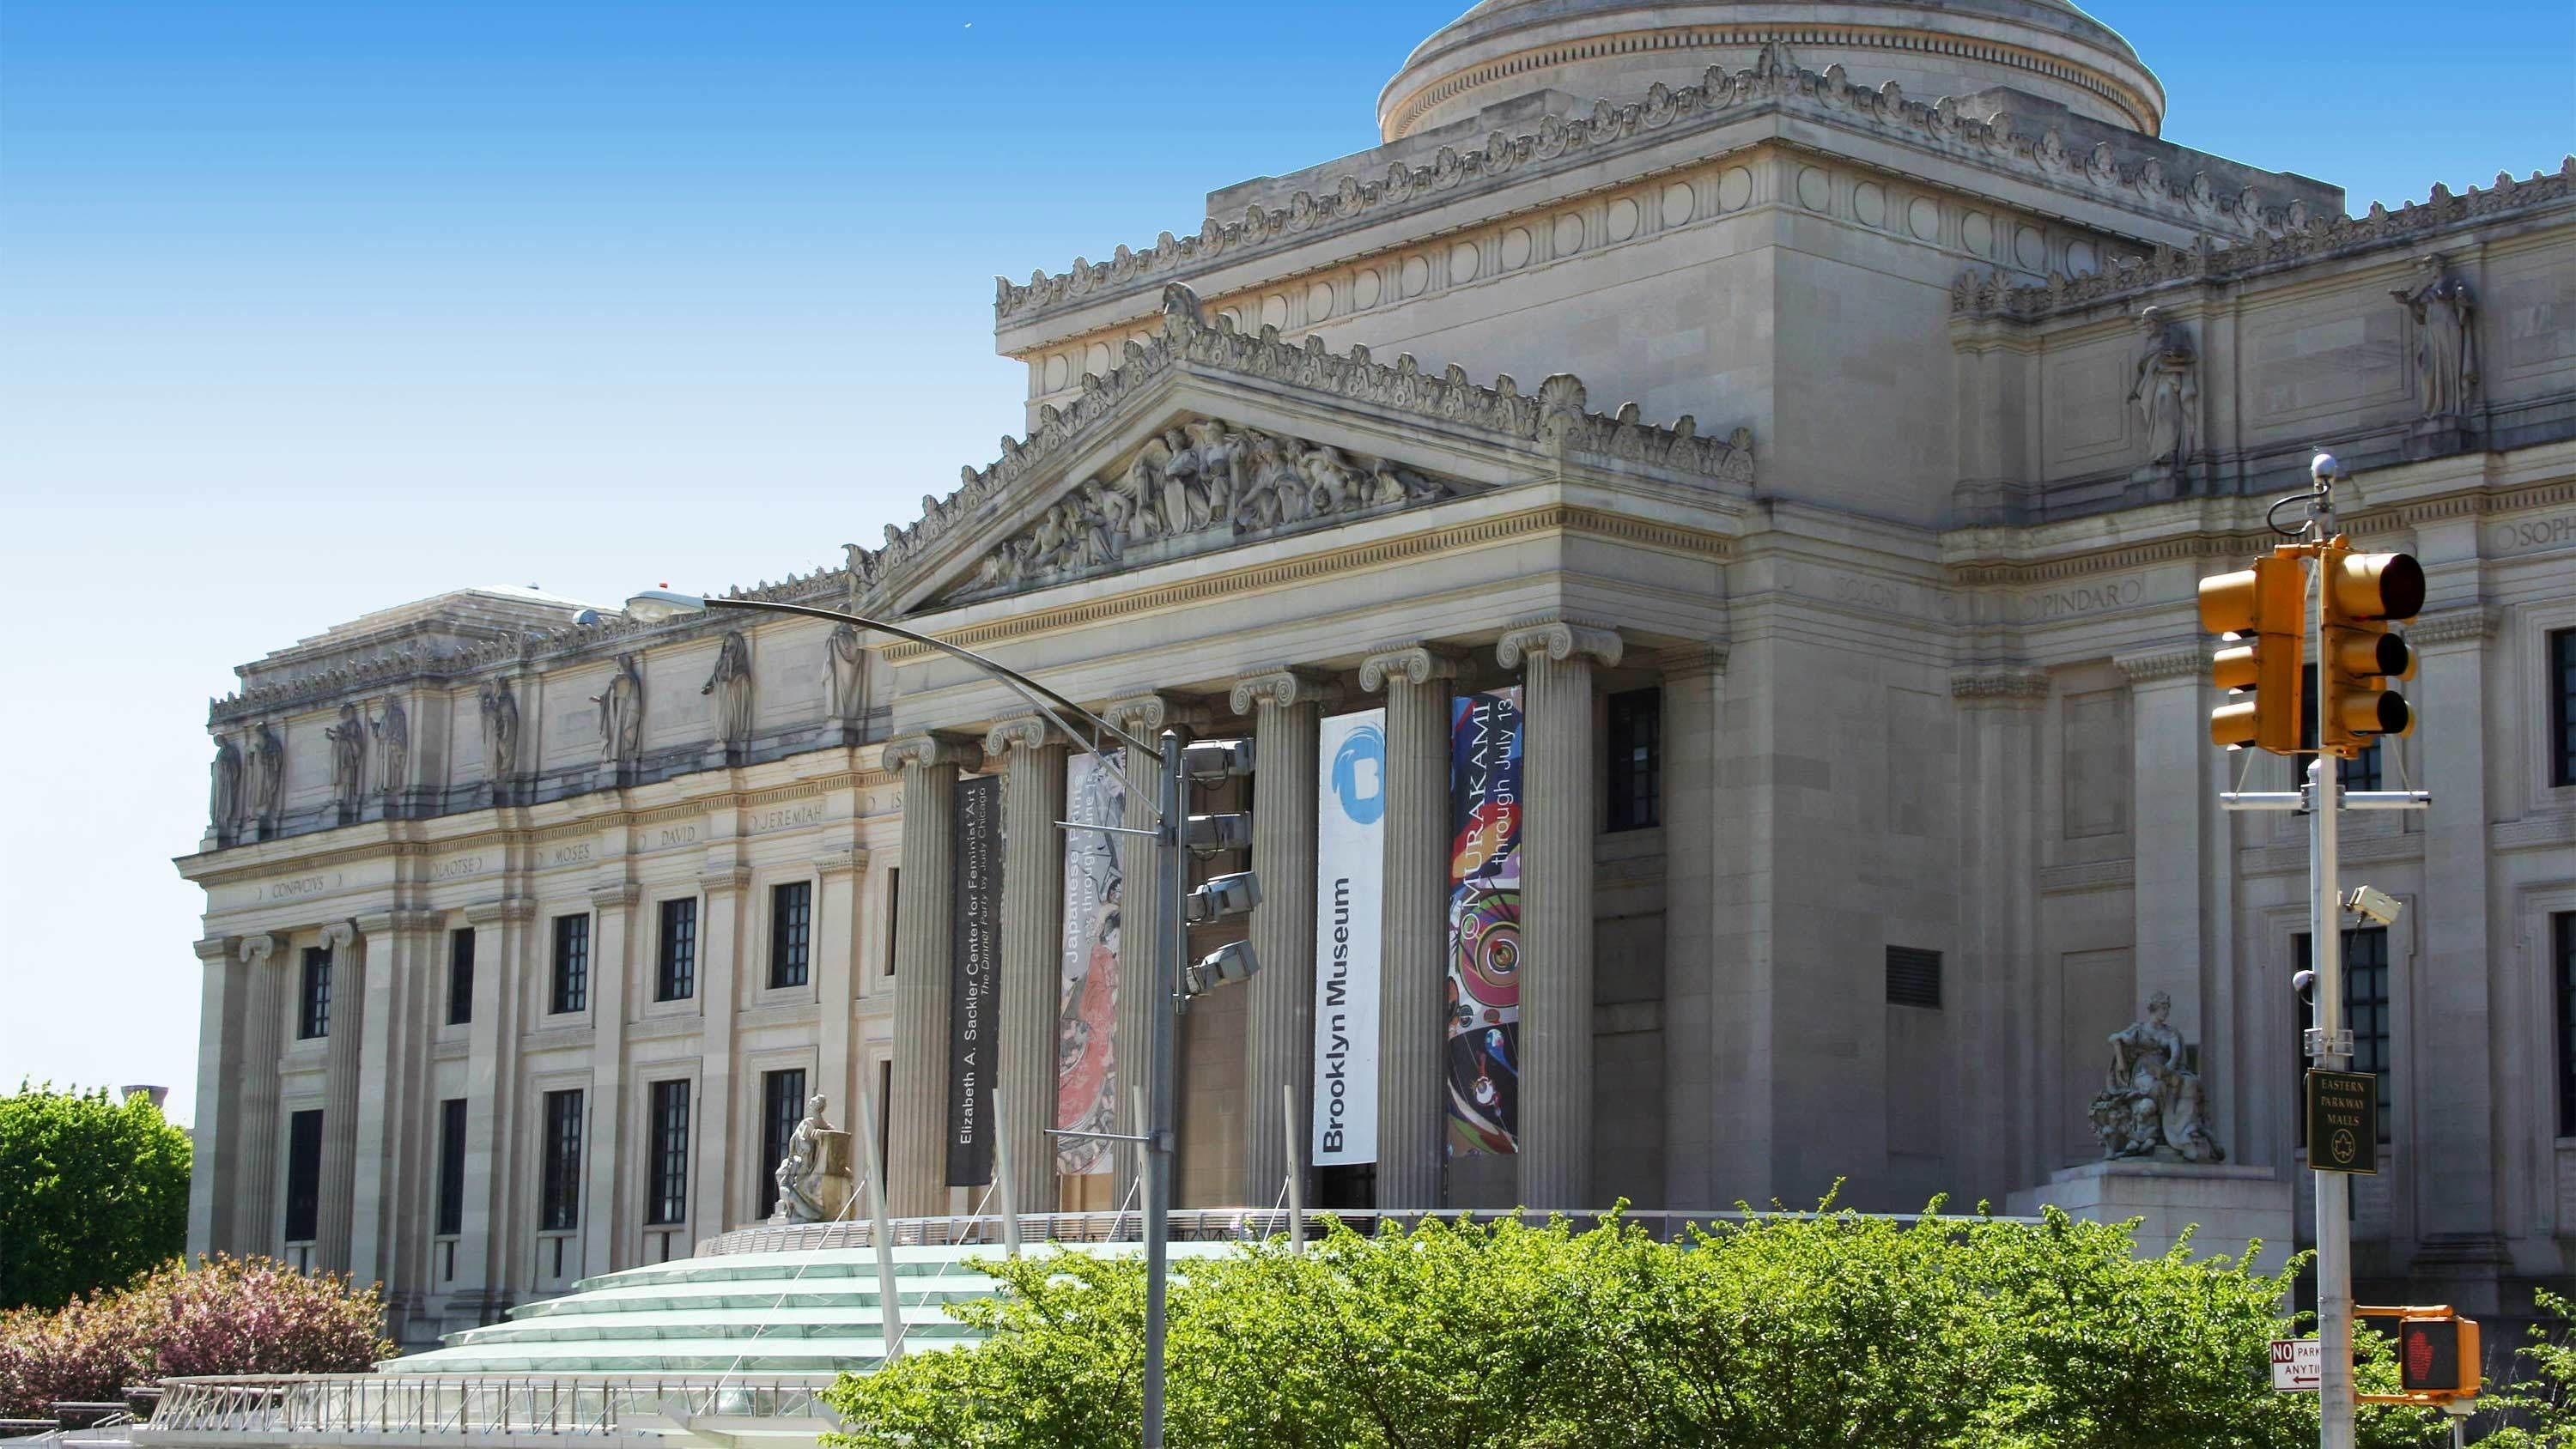 Day view of the Brooklyn Museum